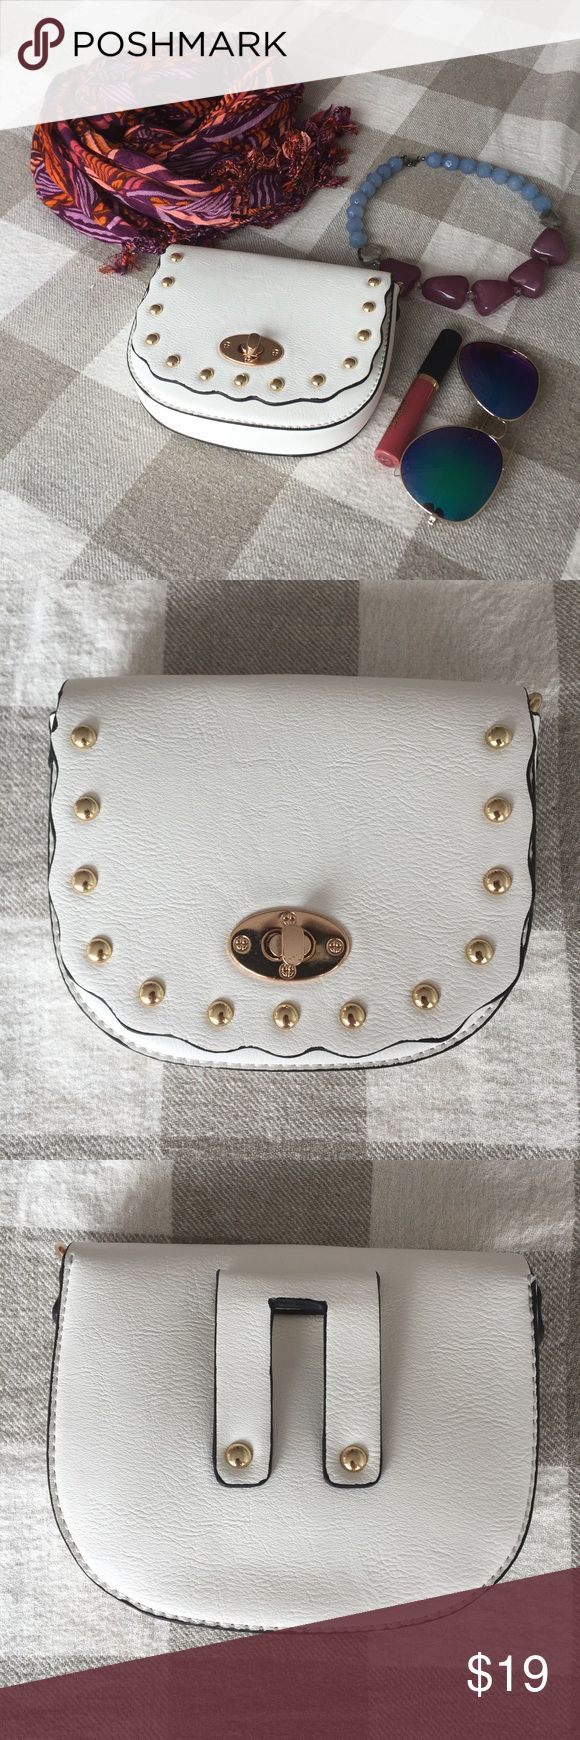 "NWOT Small Cute Crossbody Bag with Golden Drops Very cute little white crossbody bag 5.5""x6.3"" that will be a great addition to your wardrobe. Be it a night out or a trip to Europe, this little piece will nicely compliment your outfit. It can also be worn on a belt. Bags Crossbody Bags"